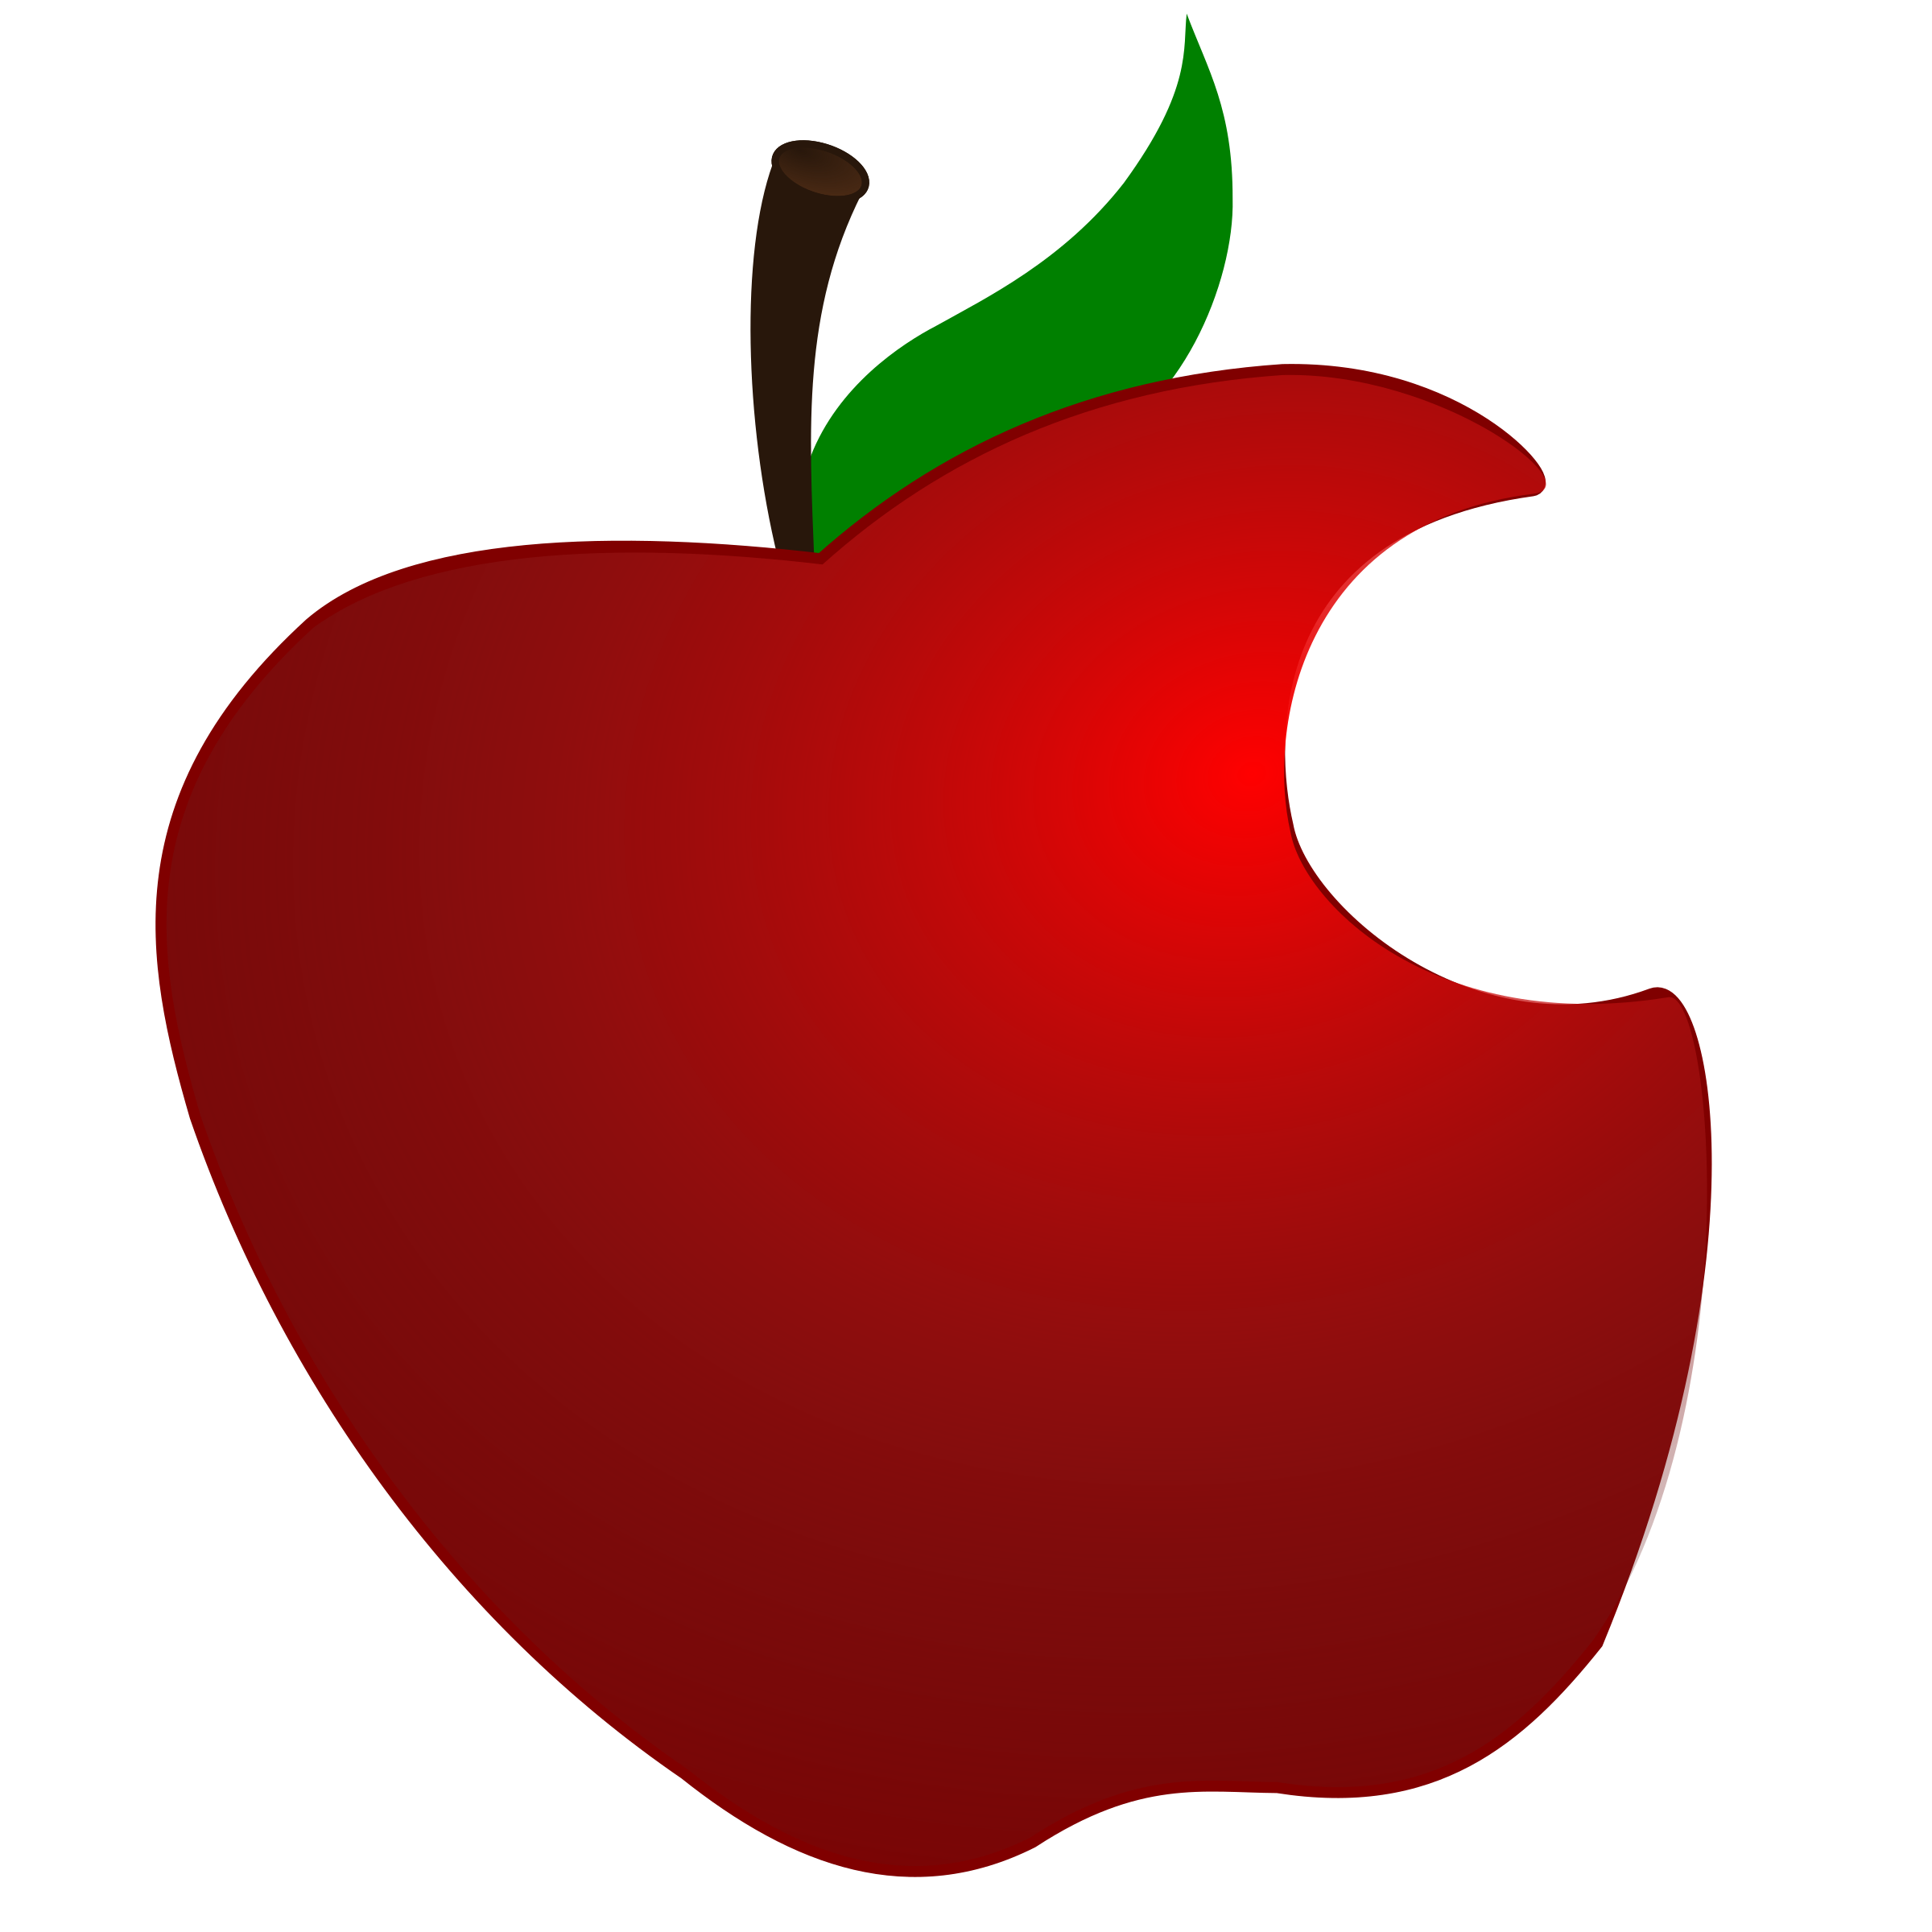 Clipart twice bitten apple picture royalty free library 28+ Collection of Apple With A Bite Out Of It Clipart | High quality ... picture royalty free library